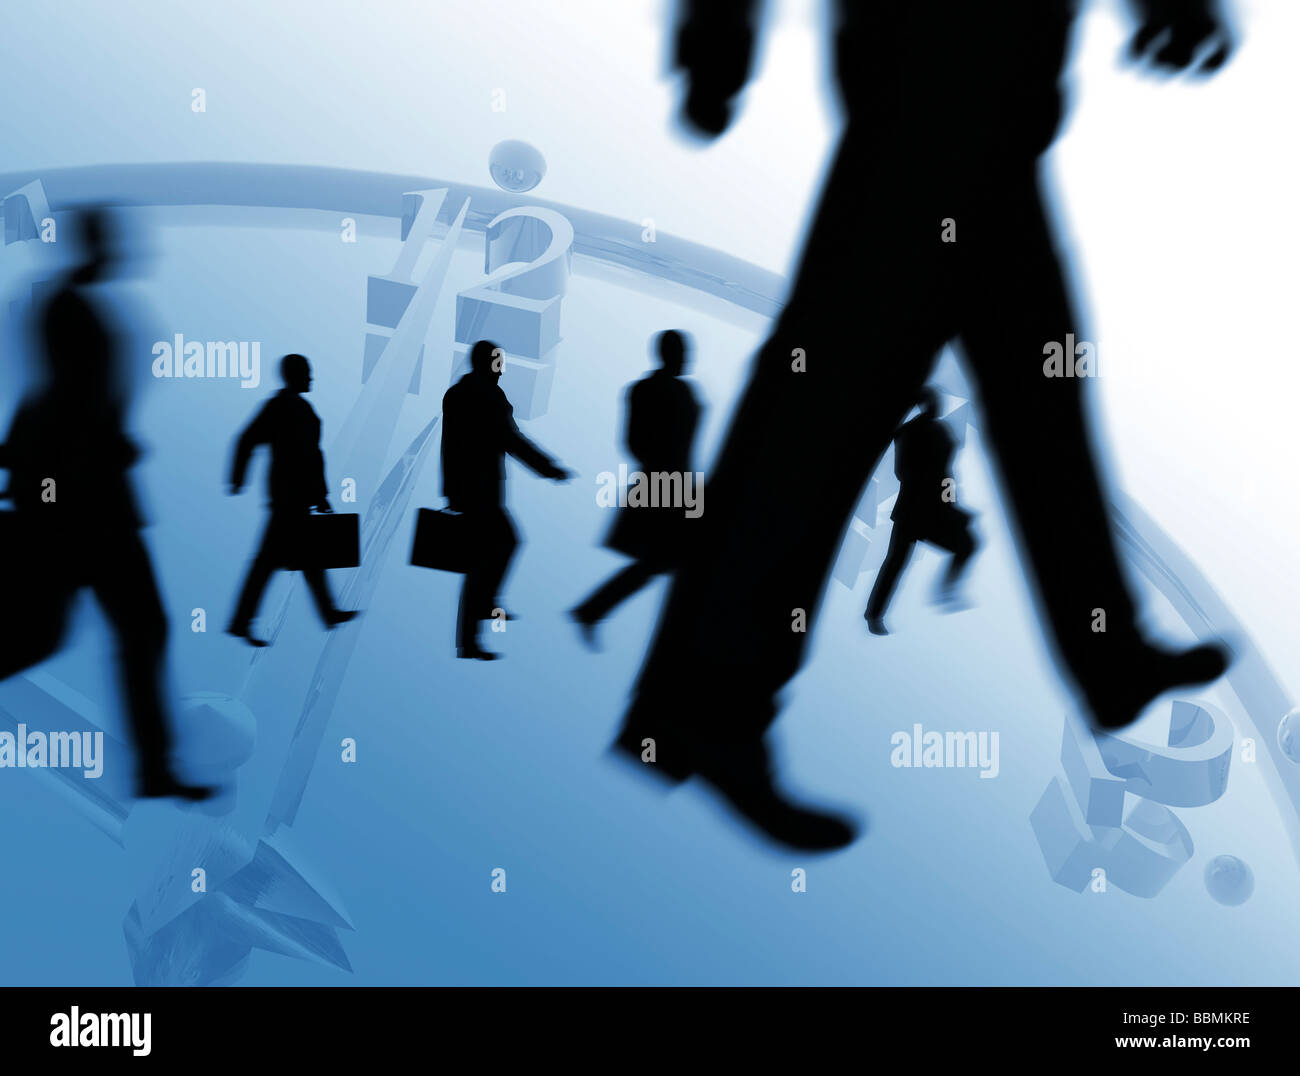 Digital composite of businessmen walking on timepiece - Stock Image